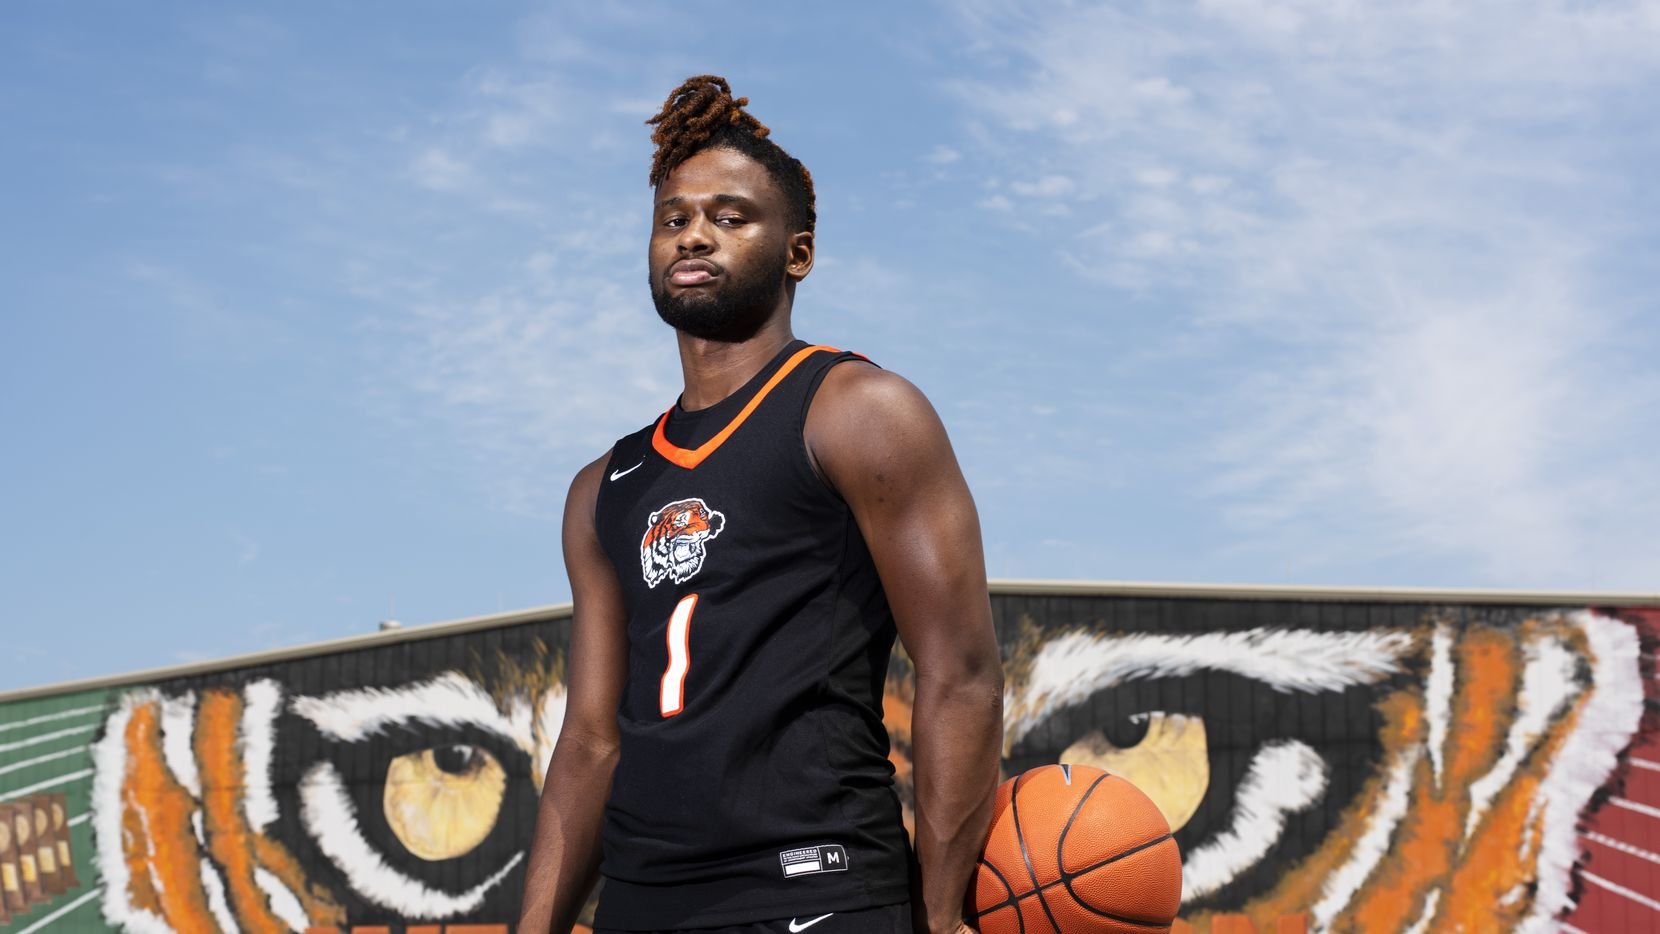 Lancaster senior Mike Miles, the 2020 SportsDayHS boys basketball player of the year, is pictured on March 26, 2020, at Lancaster High School. (Ben Torres/Special Contributor)